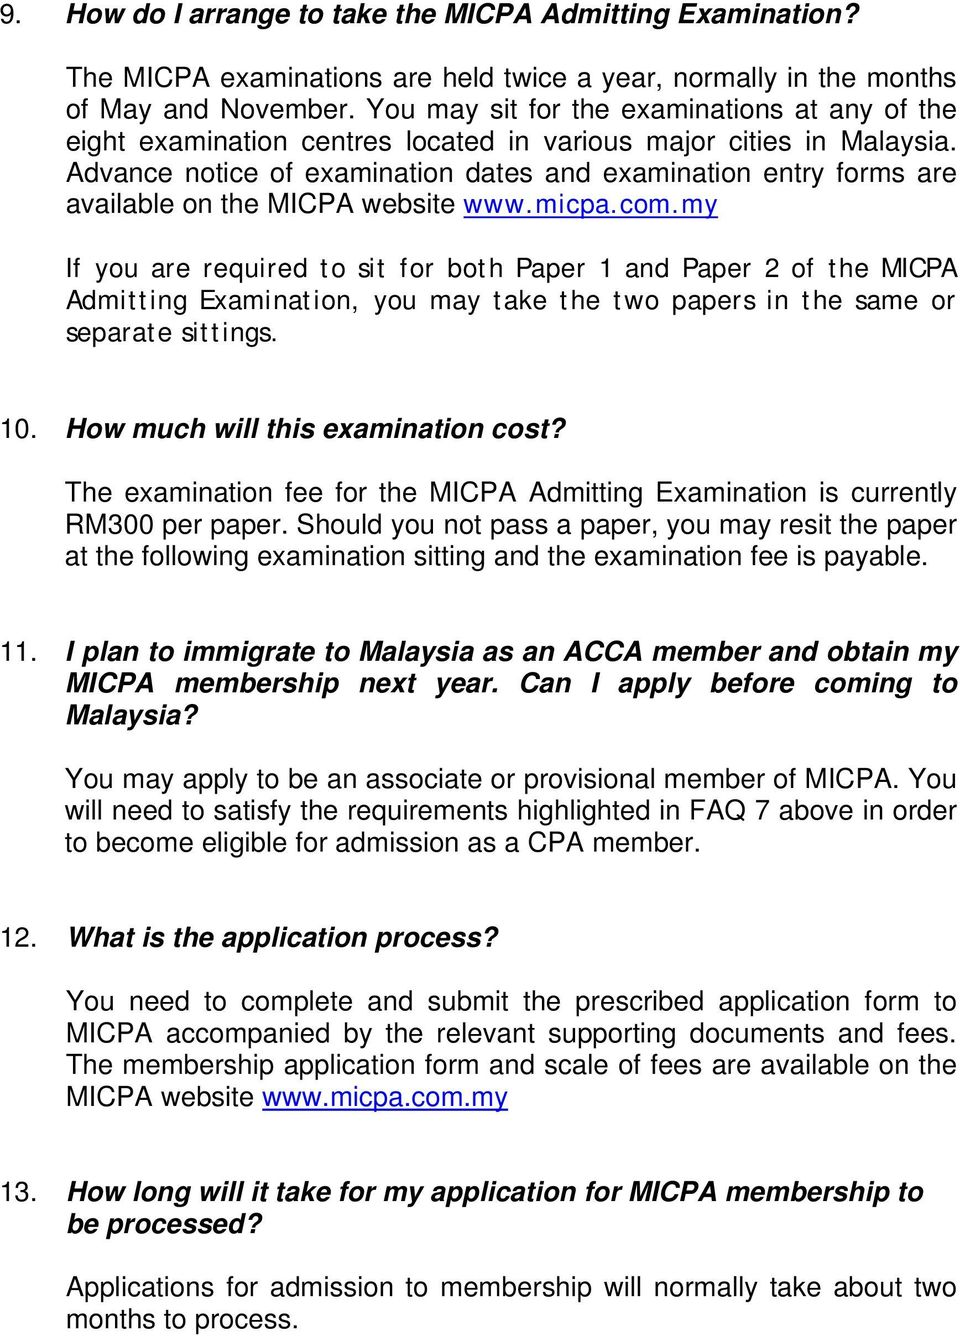 Advance notice of examination dates and examination entry forms are available on the MICPA website www.micpa.com.